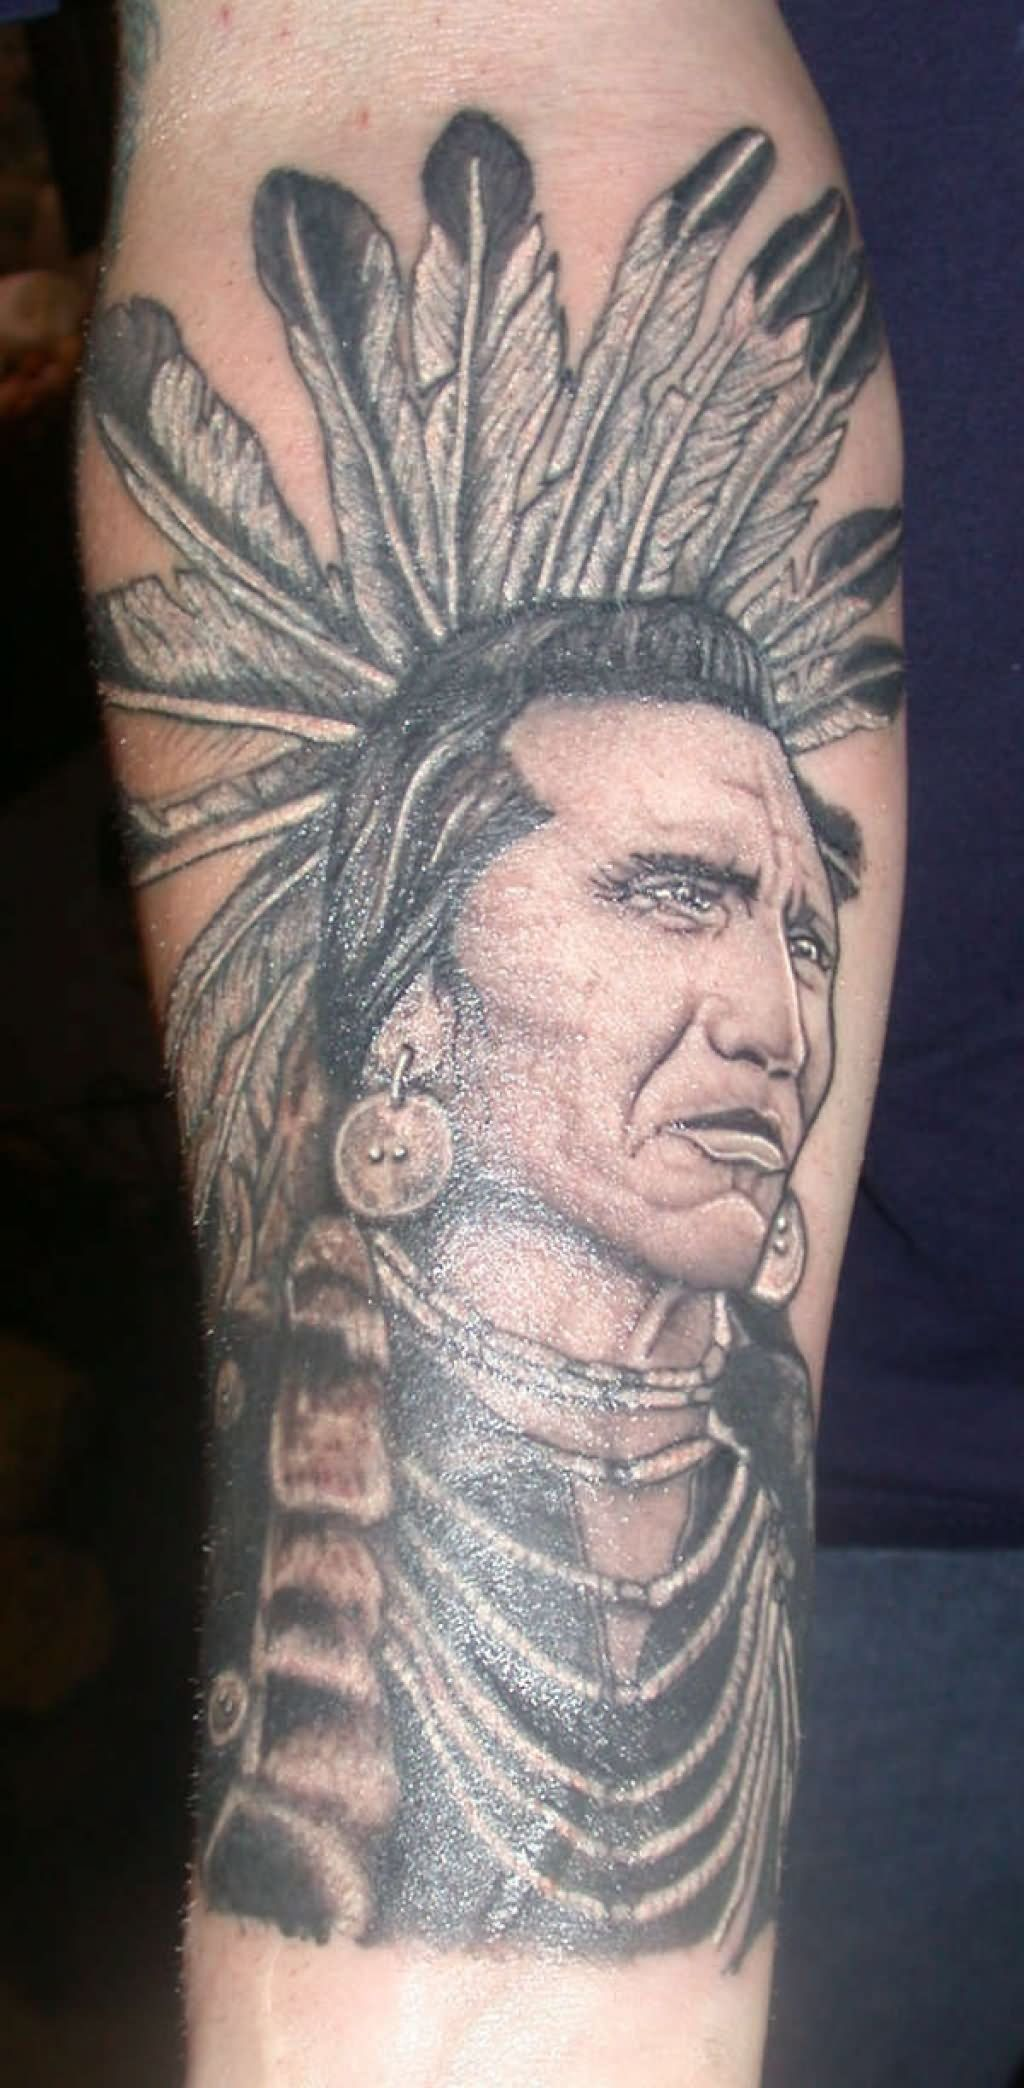 Native Indian Tattoo On Forearm American Indian Tattoos Indian Tattoo Native American Tattoos